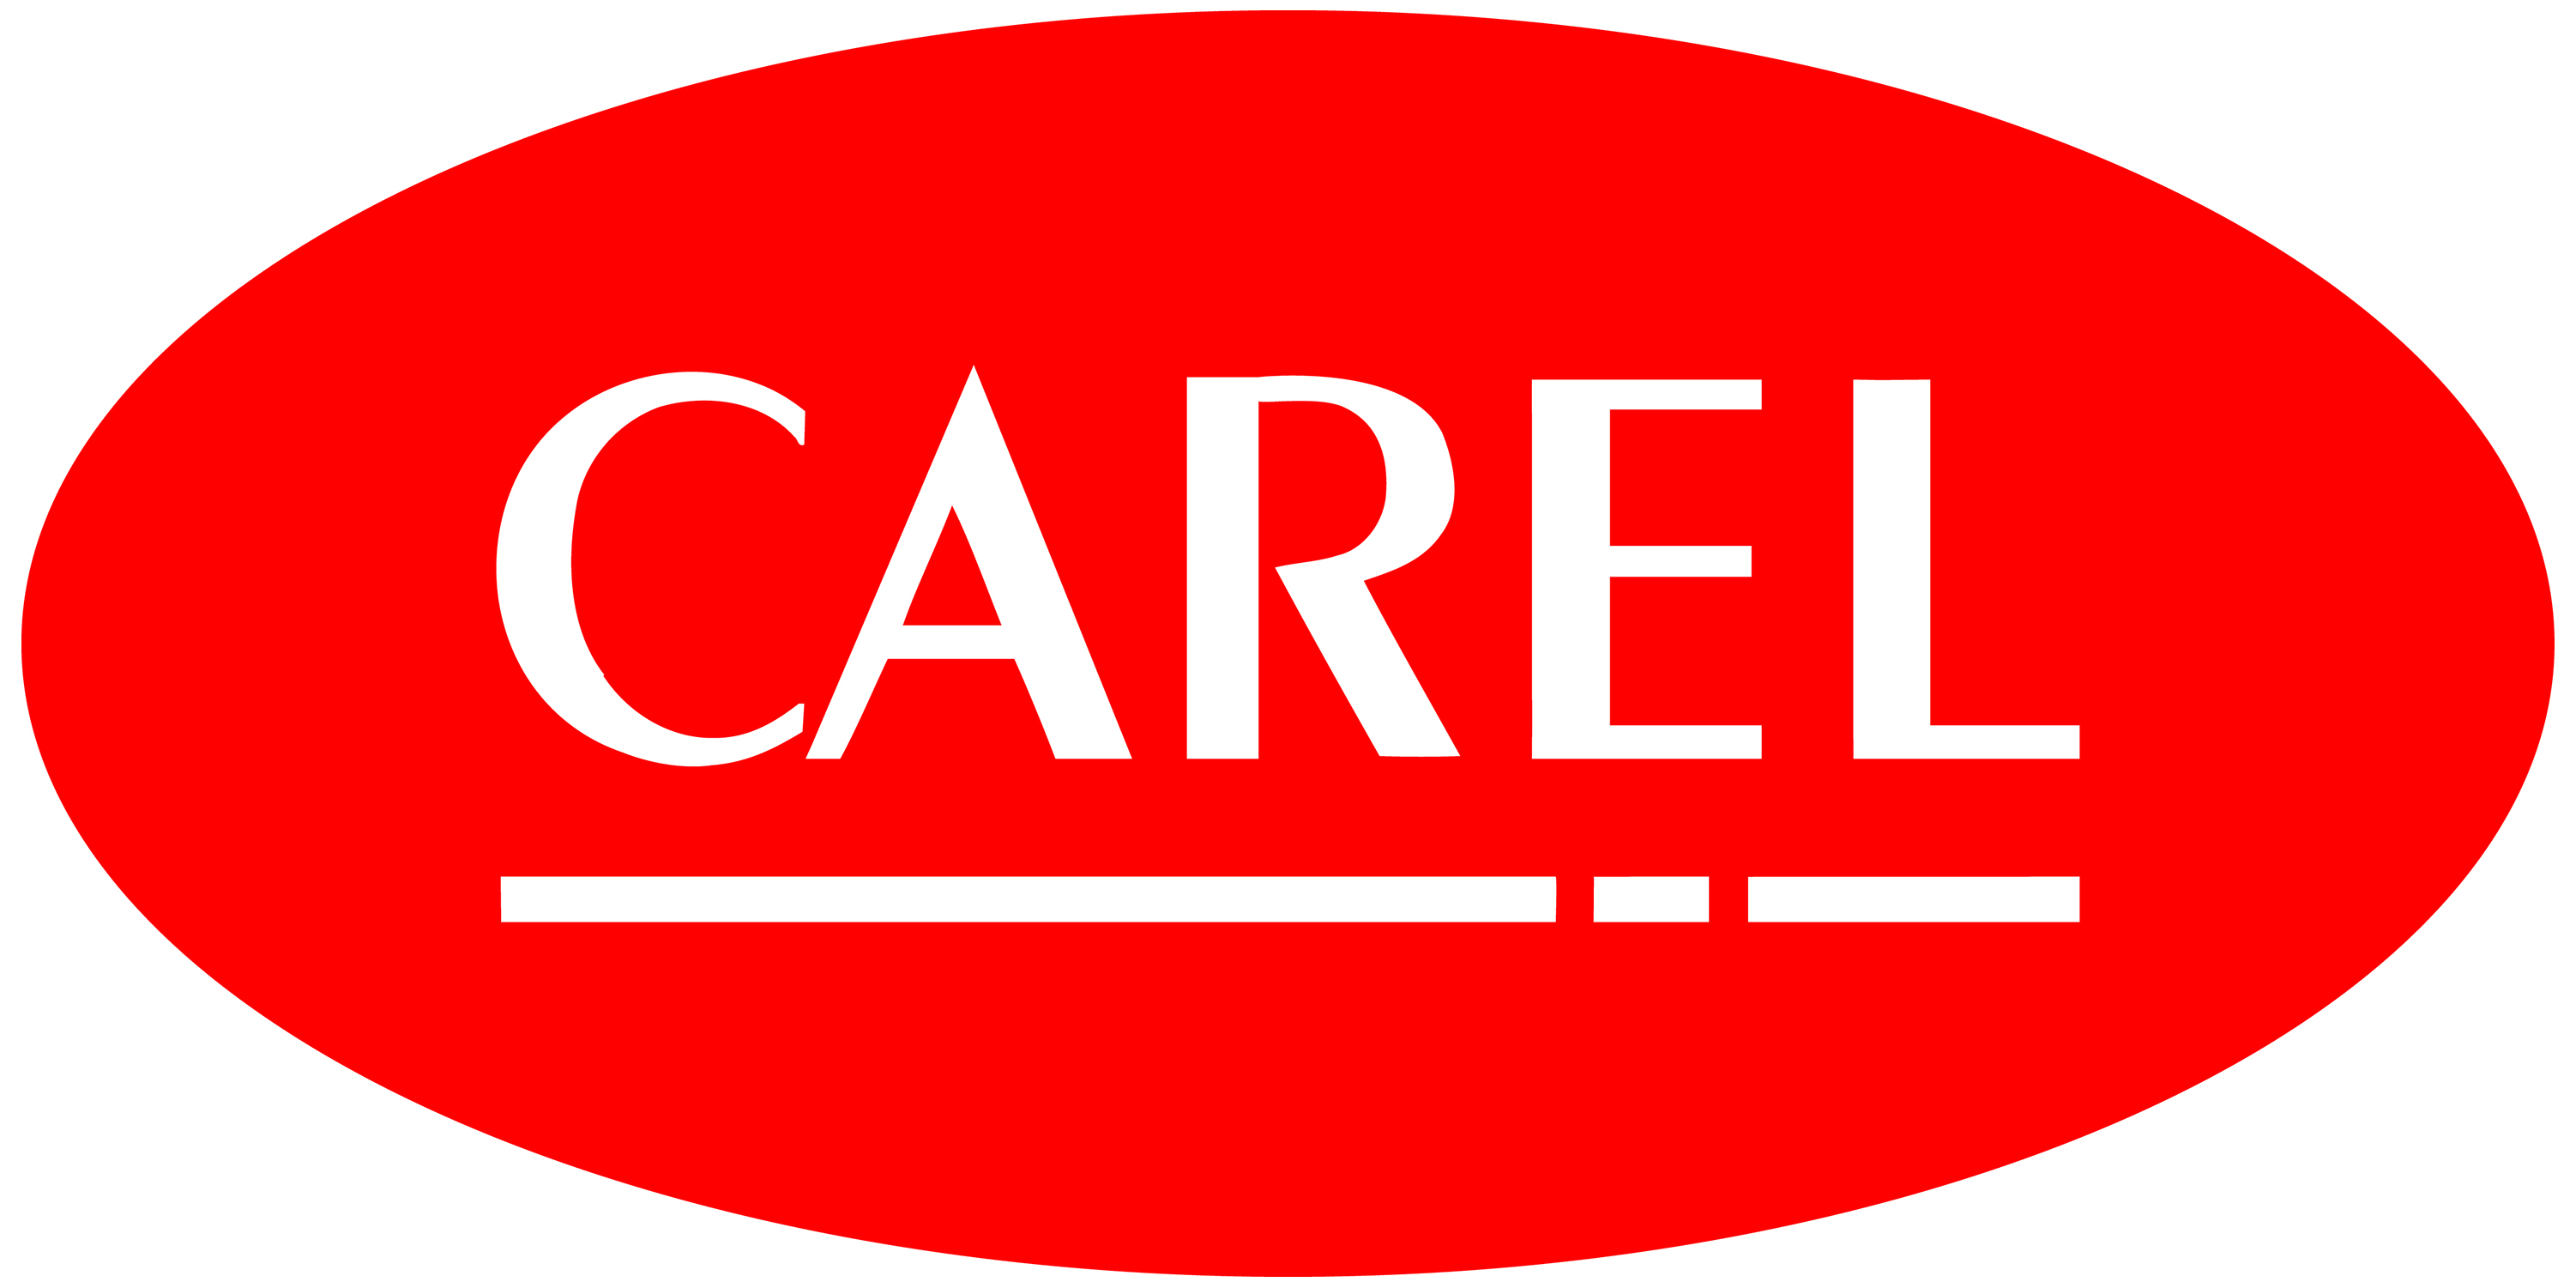 CAREL - Internship